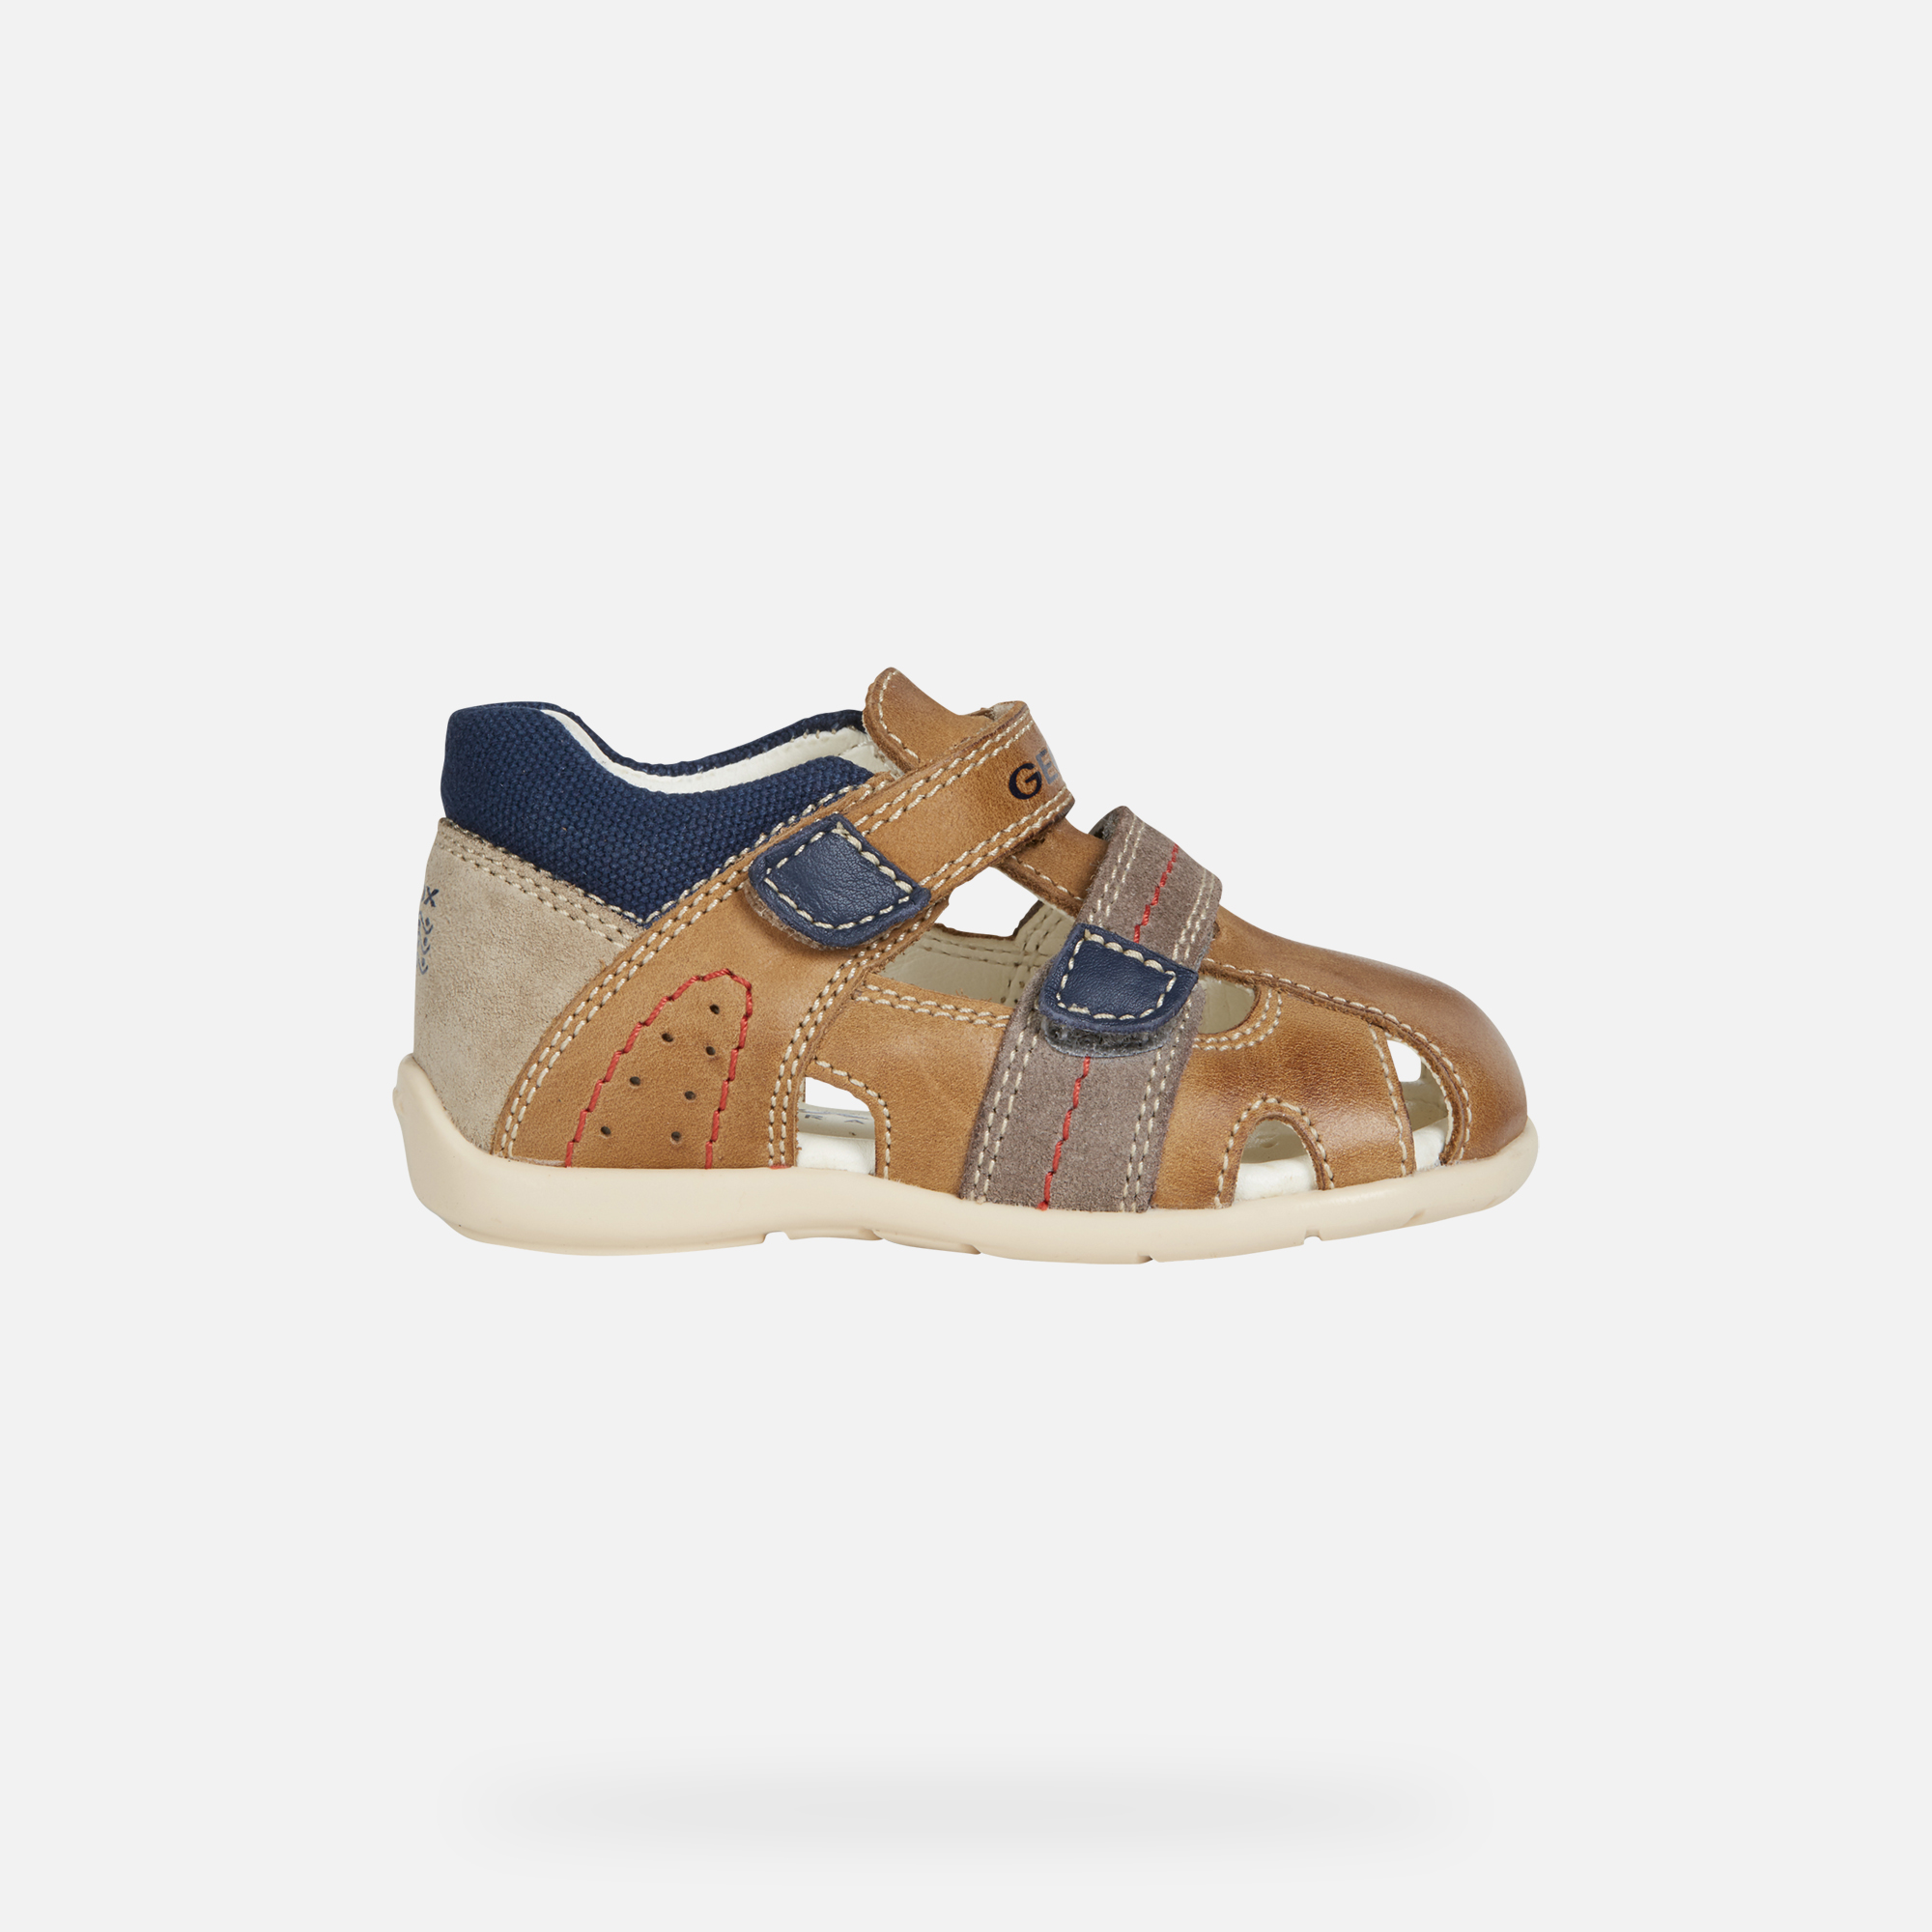 Geox B KAYTAN: Caramel and Brown Baby Boy First Steps Shoes